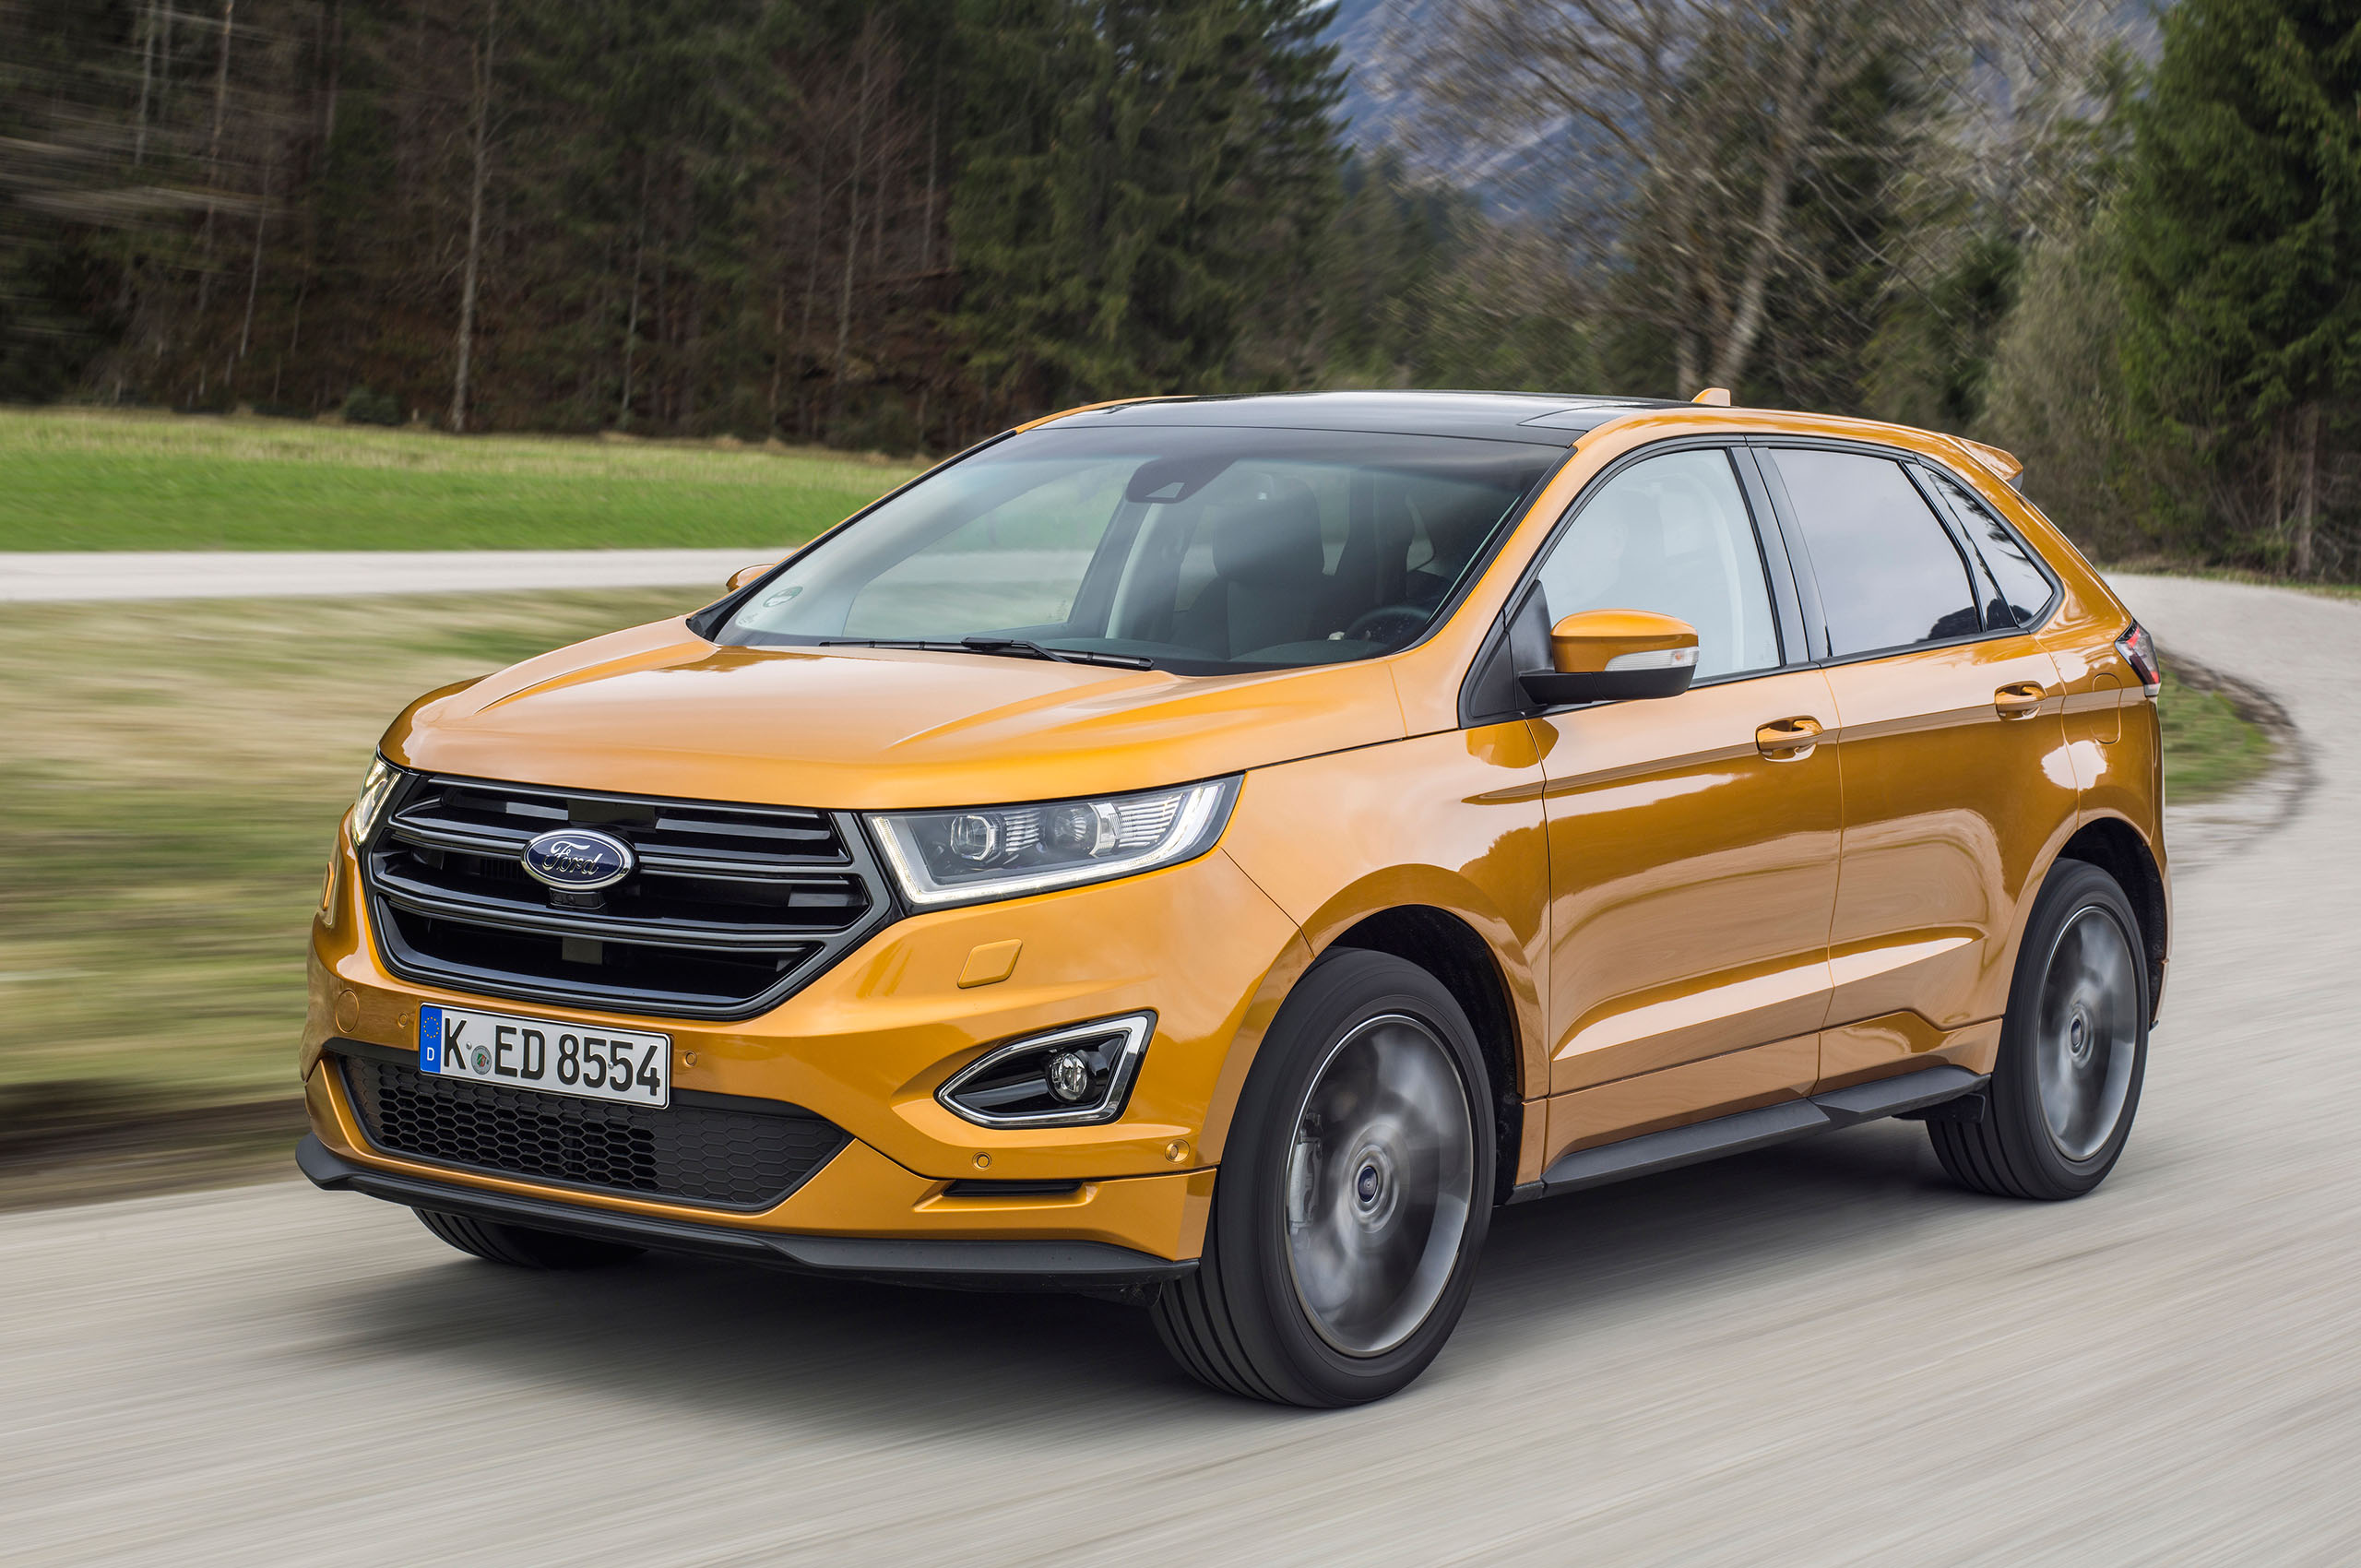 unveils range ms relatedmedia efficient fordmedia suv kuga feu european ford sy and viewmore sync with relatedphoto news rightrailpar expanding heck ecirgb sporty advanced en image jcr s new content